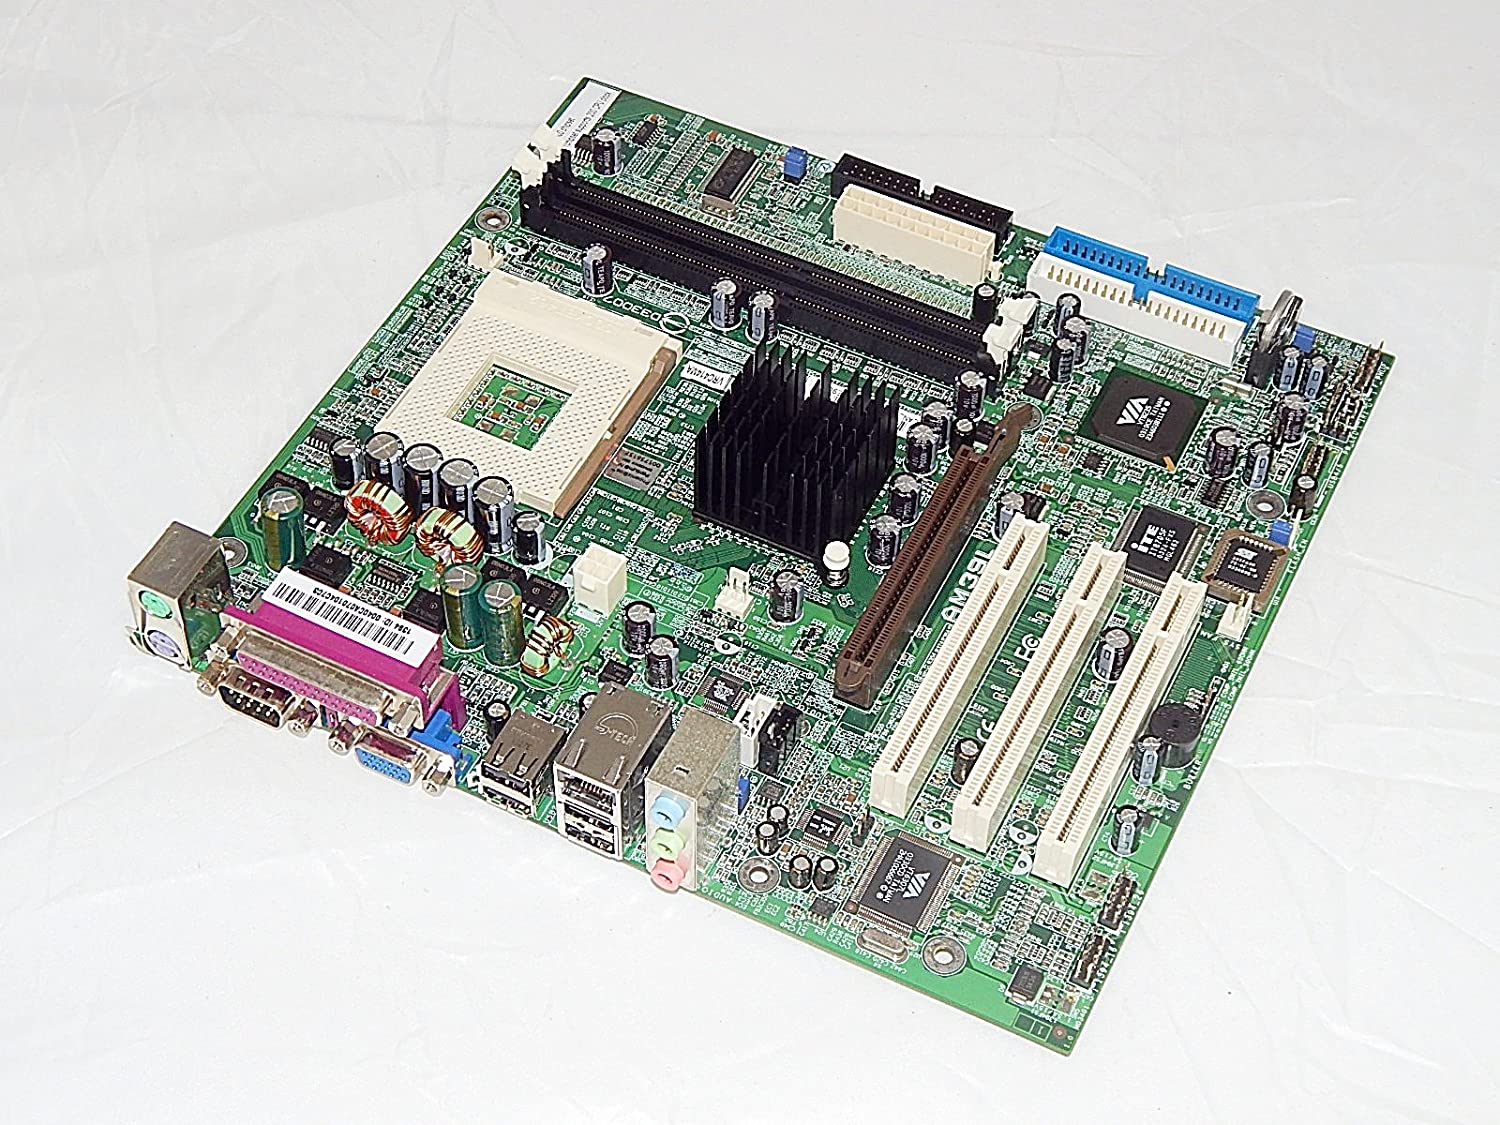 KM400 MOTHERBOARD DOWNLOAD DRIVER